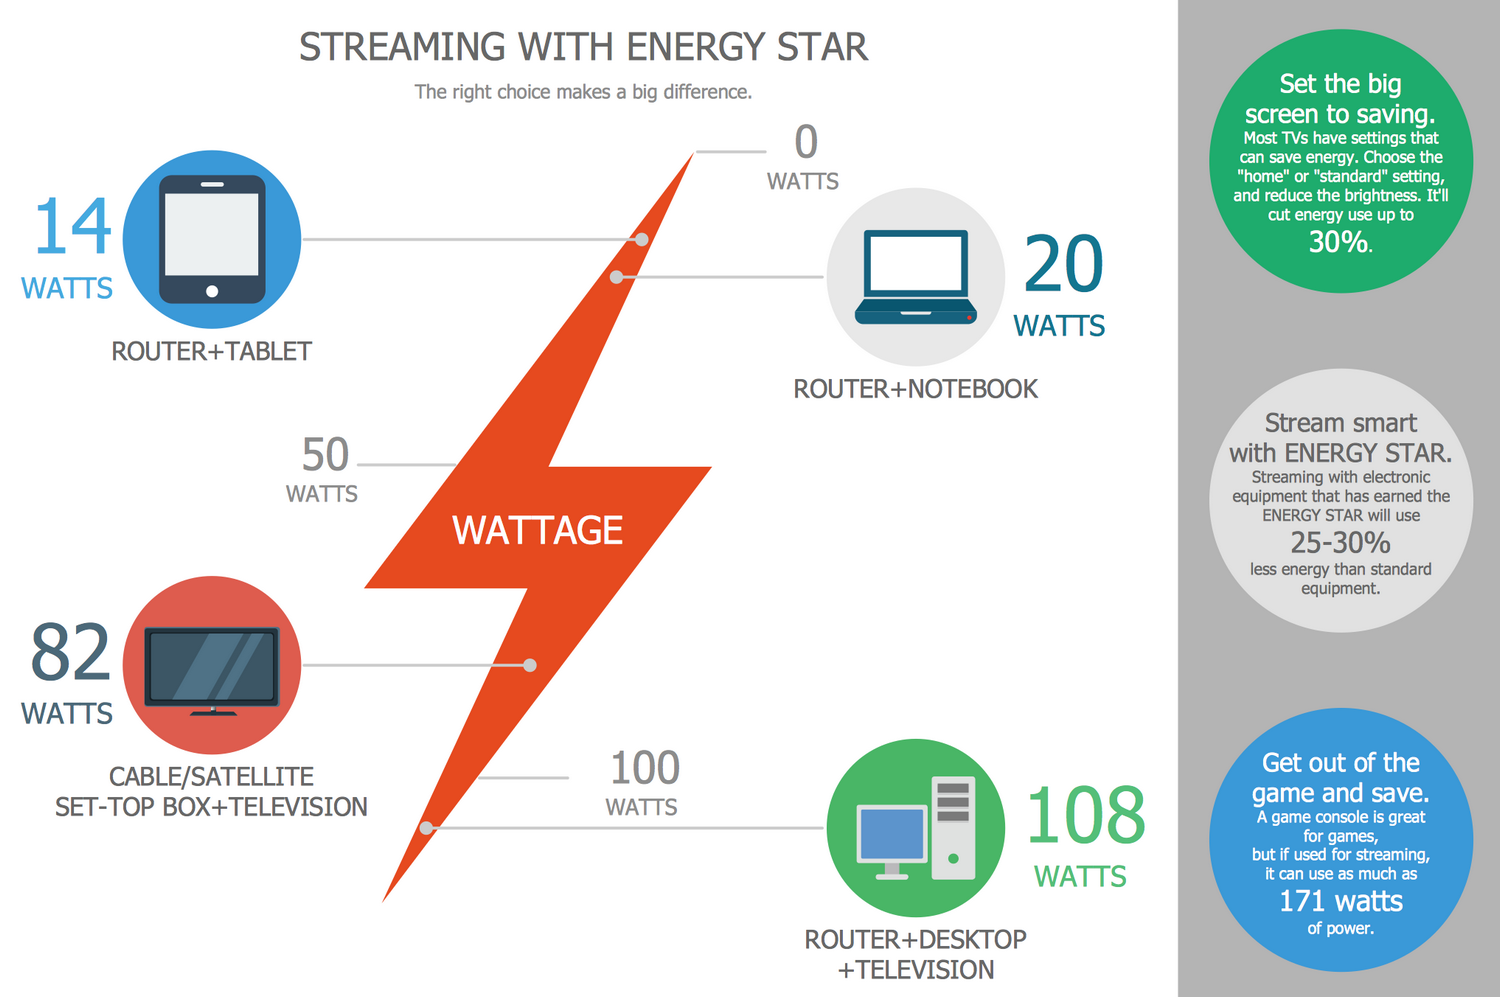 IIllustration Audio, Video, Media Example - Streaming with Energy Star